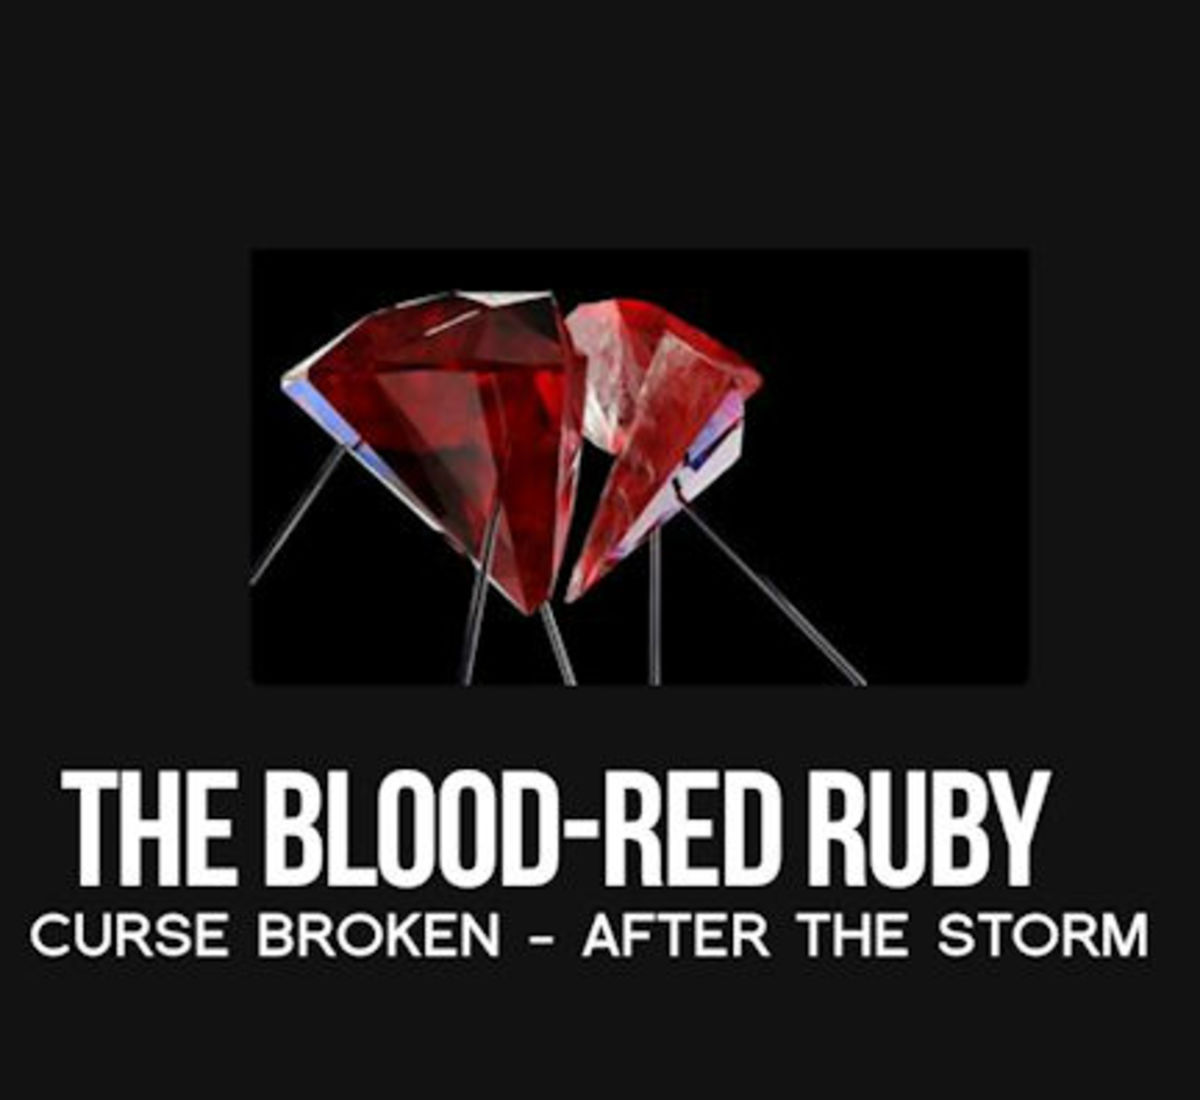 The Blood-Red Ruby: After the Storm 11